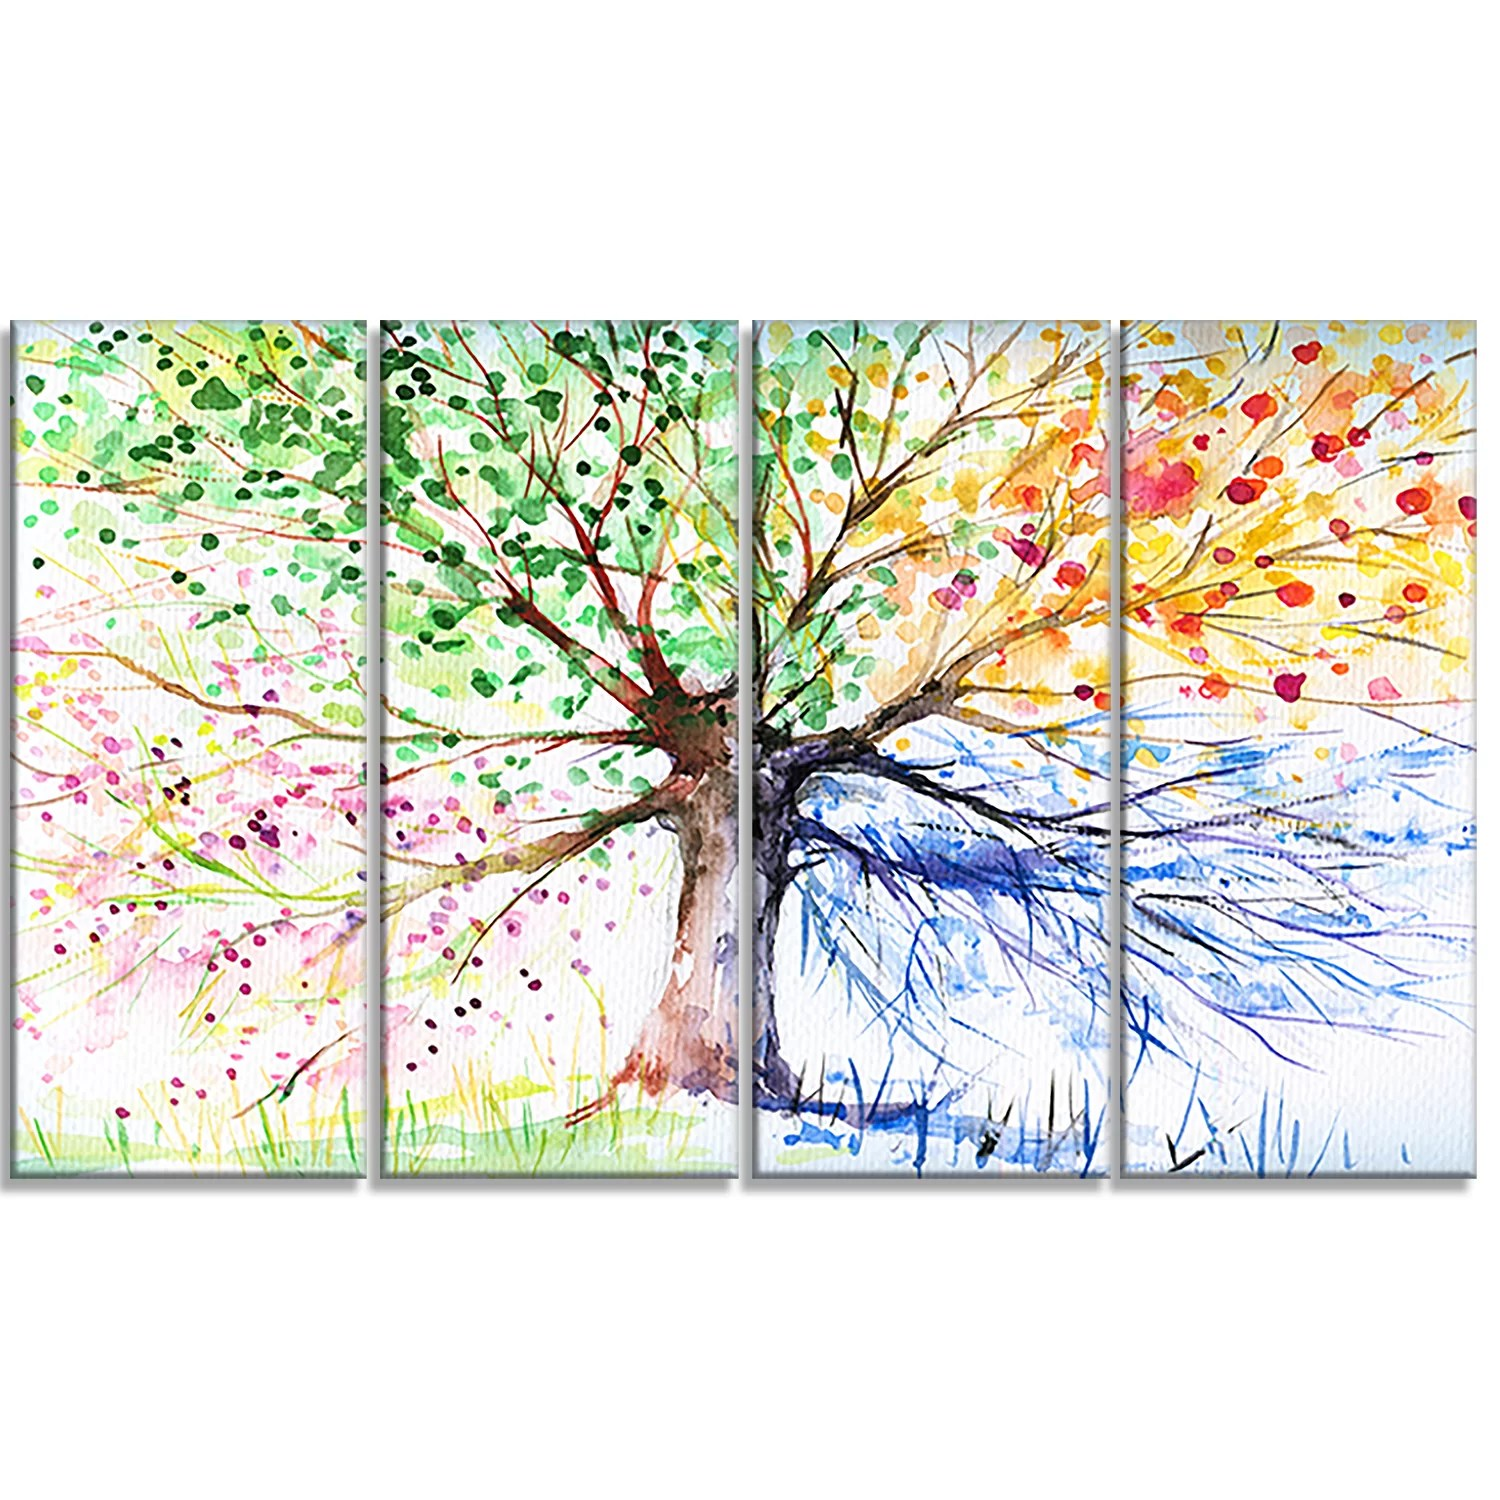 Designart Four Seasons Tree Floral 4 Piece Painting Print On Wrapped Canvas Set